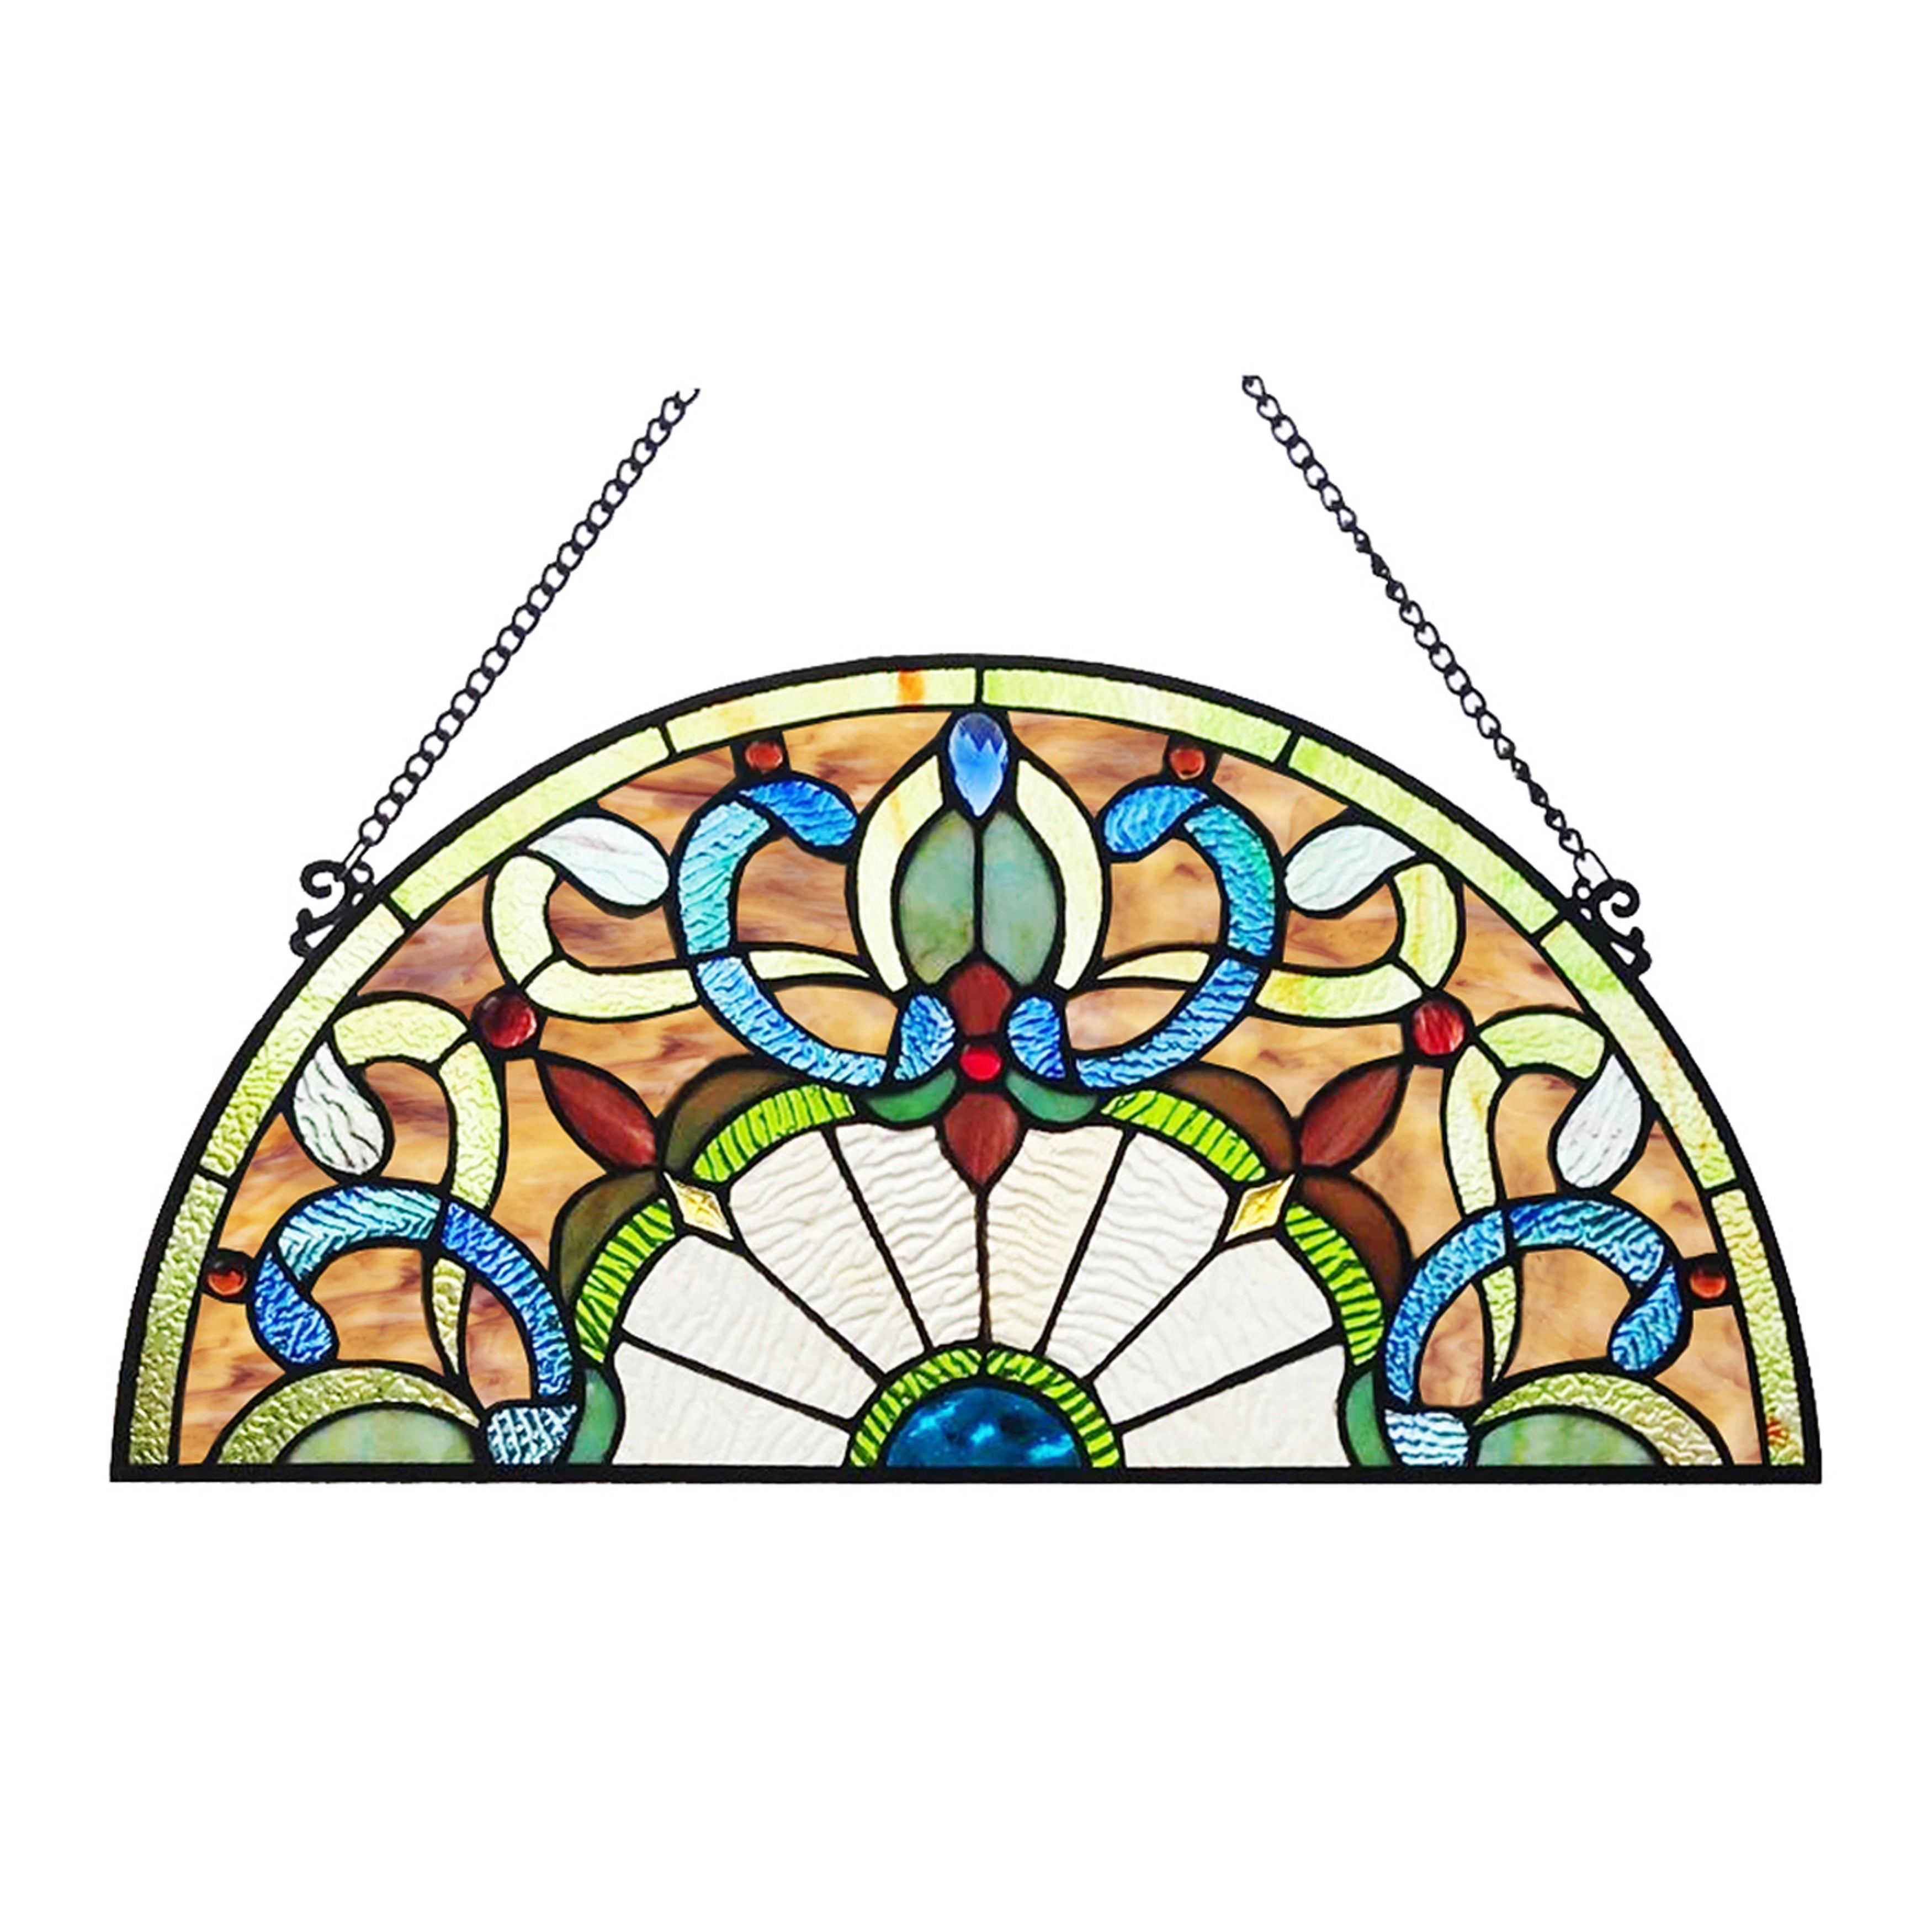 455d5469f Shop River of Goods Victorian Corista Half-Moon Stained Glass Window Panel  - Free Shipping Today - Overstock - 23040700